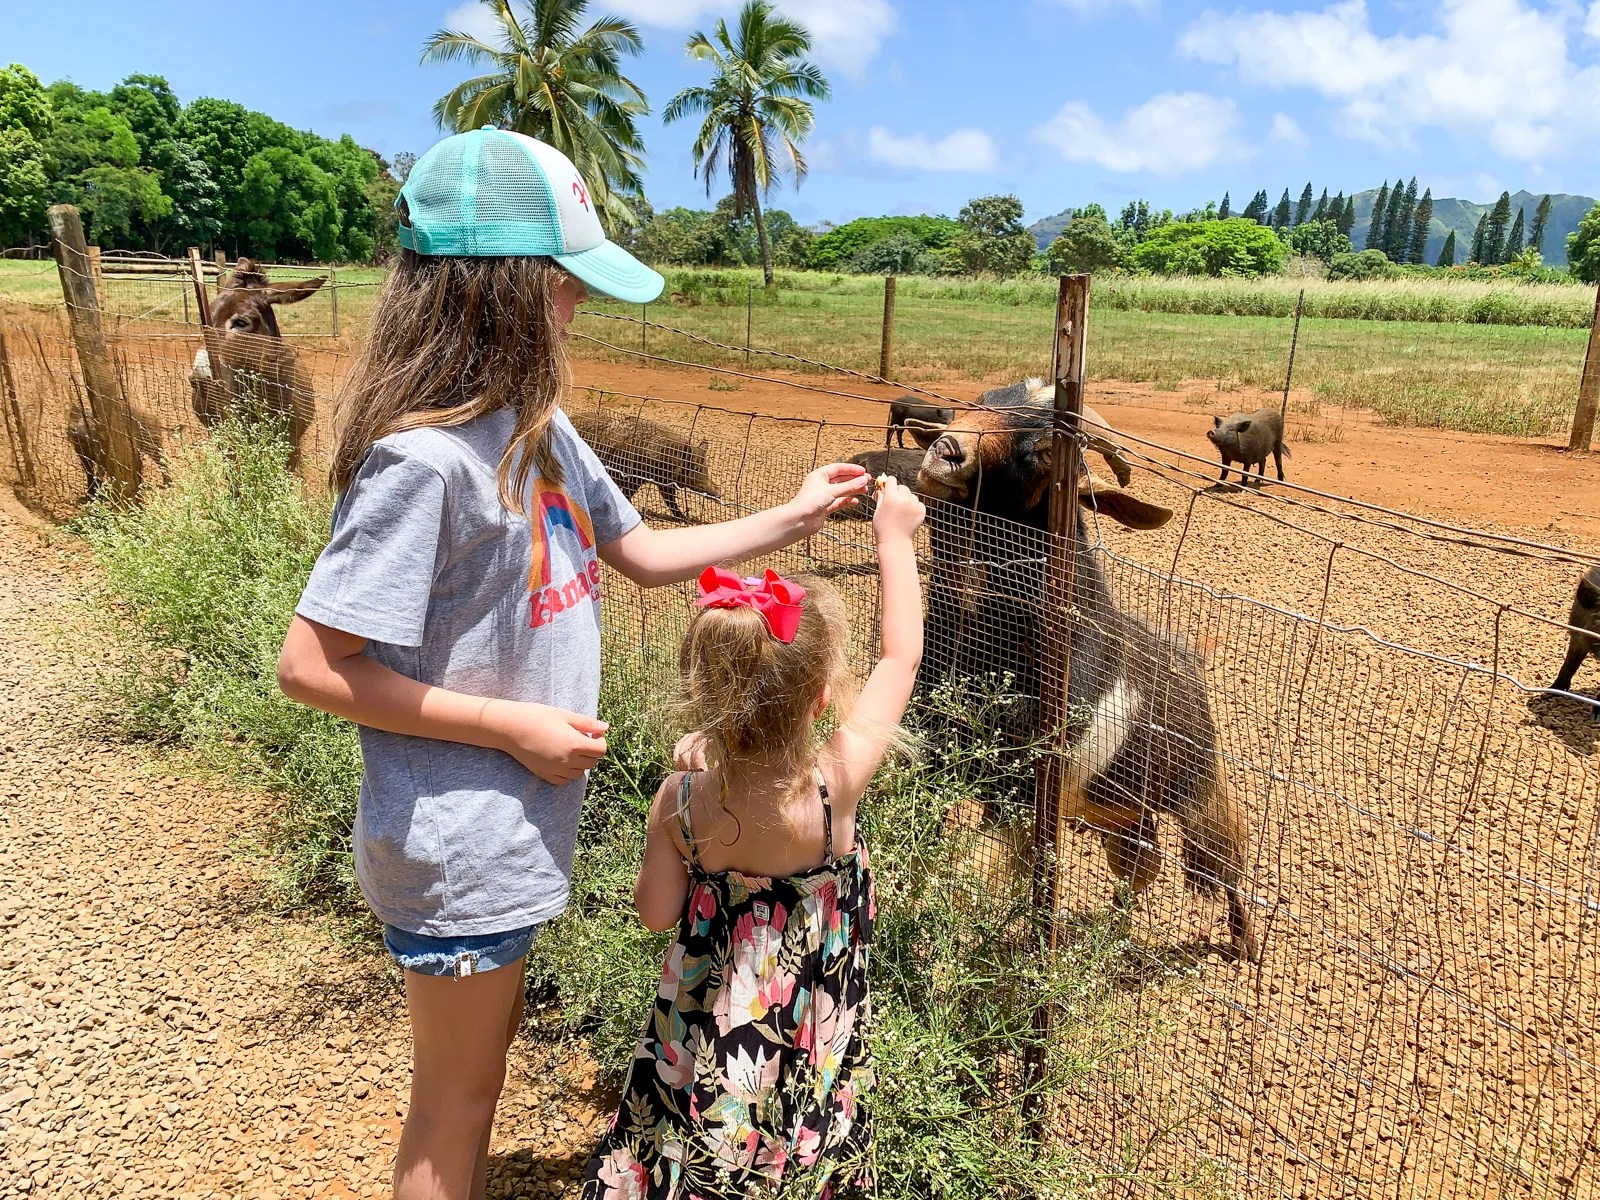 The Best Activities in Kauai to Try With Kids